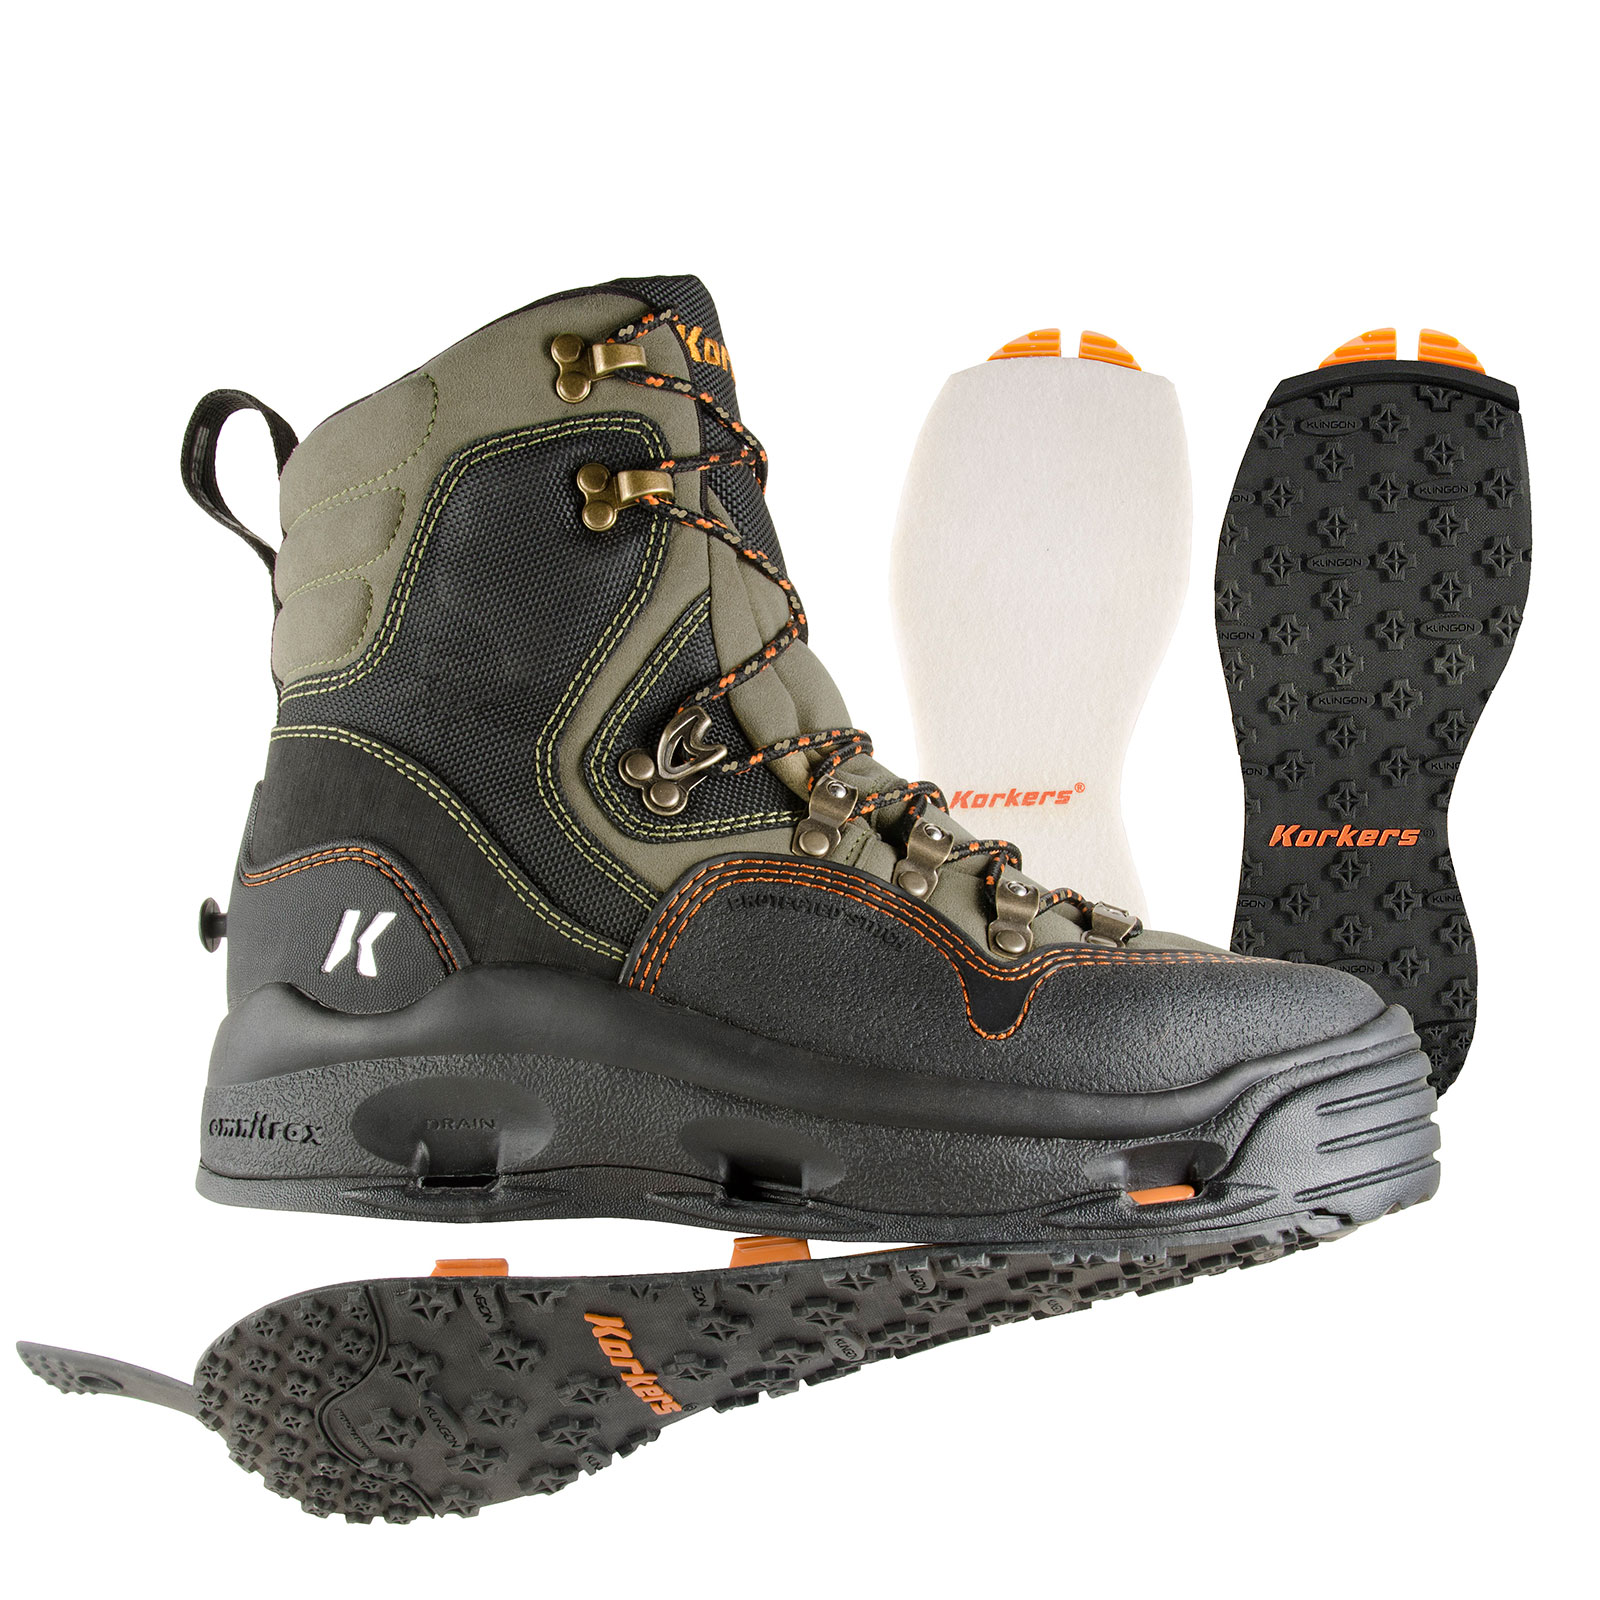 Korkers k 5 bomber fly fishing wading boot w felt kling for Fly fishing shoes